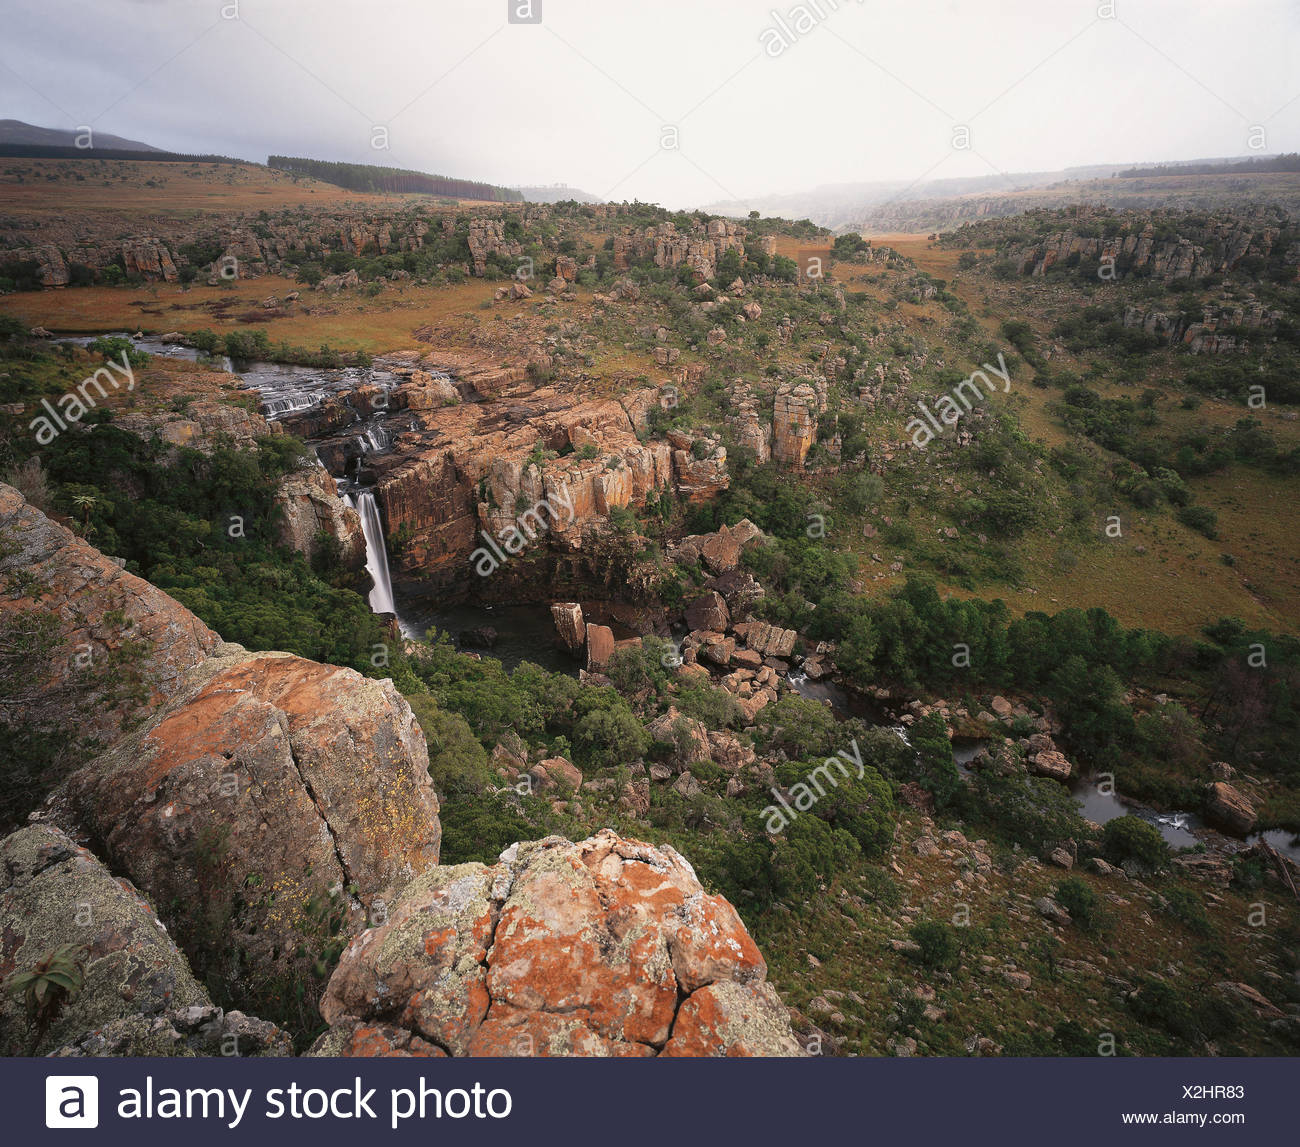 Overhead view of rocky landscape, river and waterfall. Mpumalanga, South Africa, Africa. - Stock Image